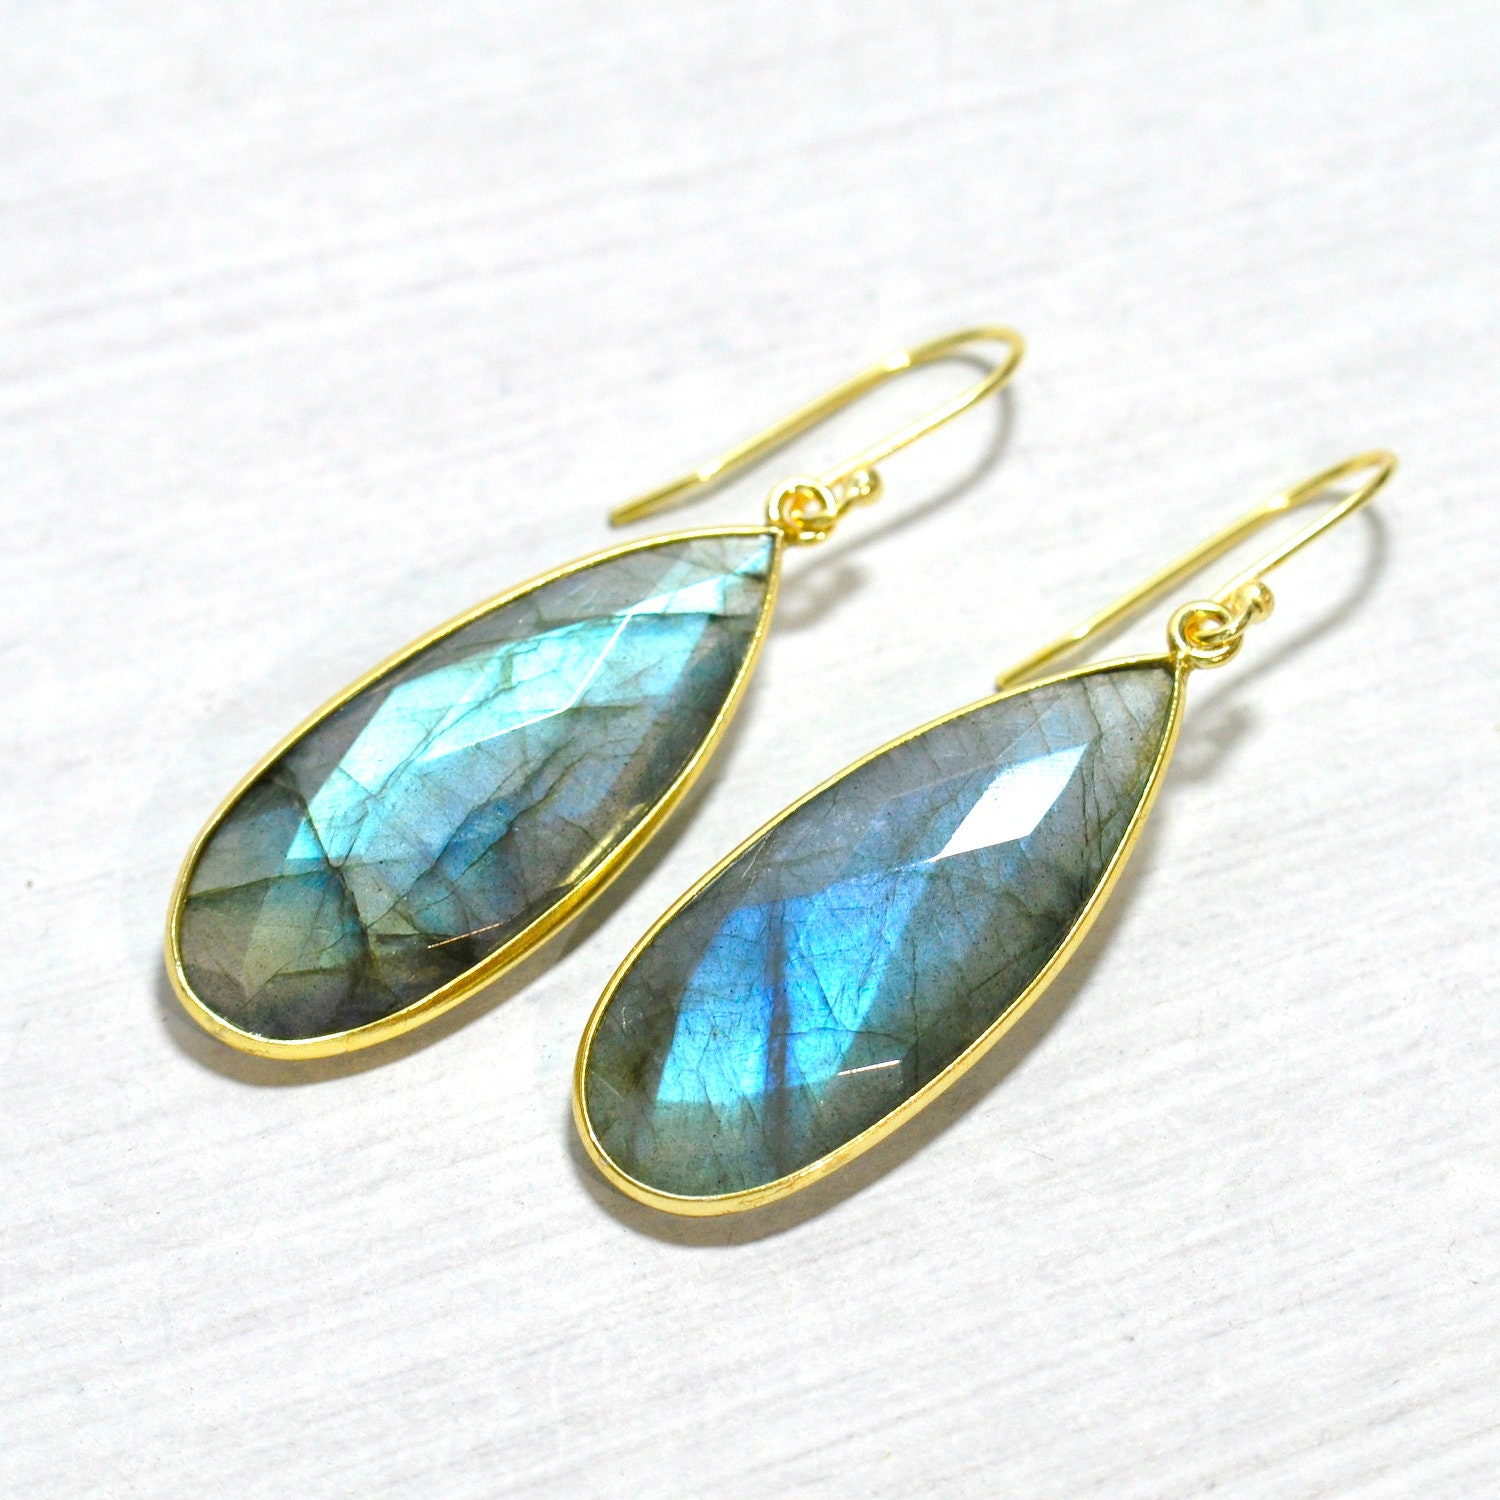 shop earrings norte labradorite luna dream big